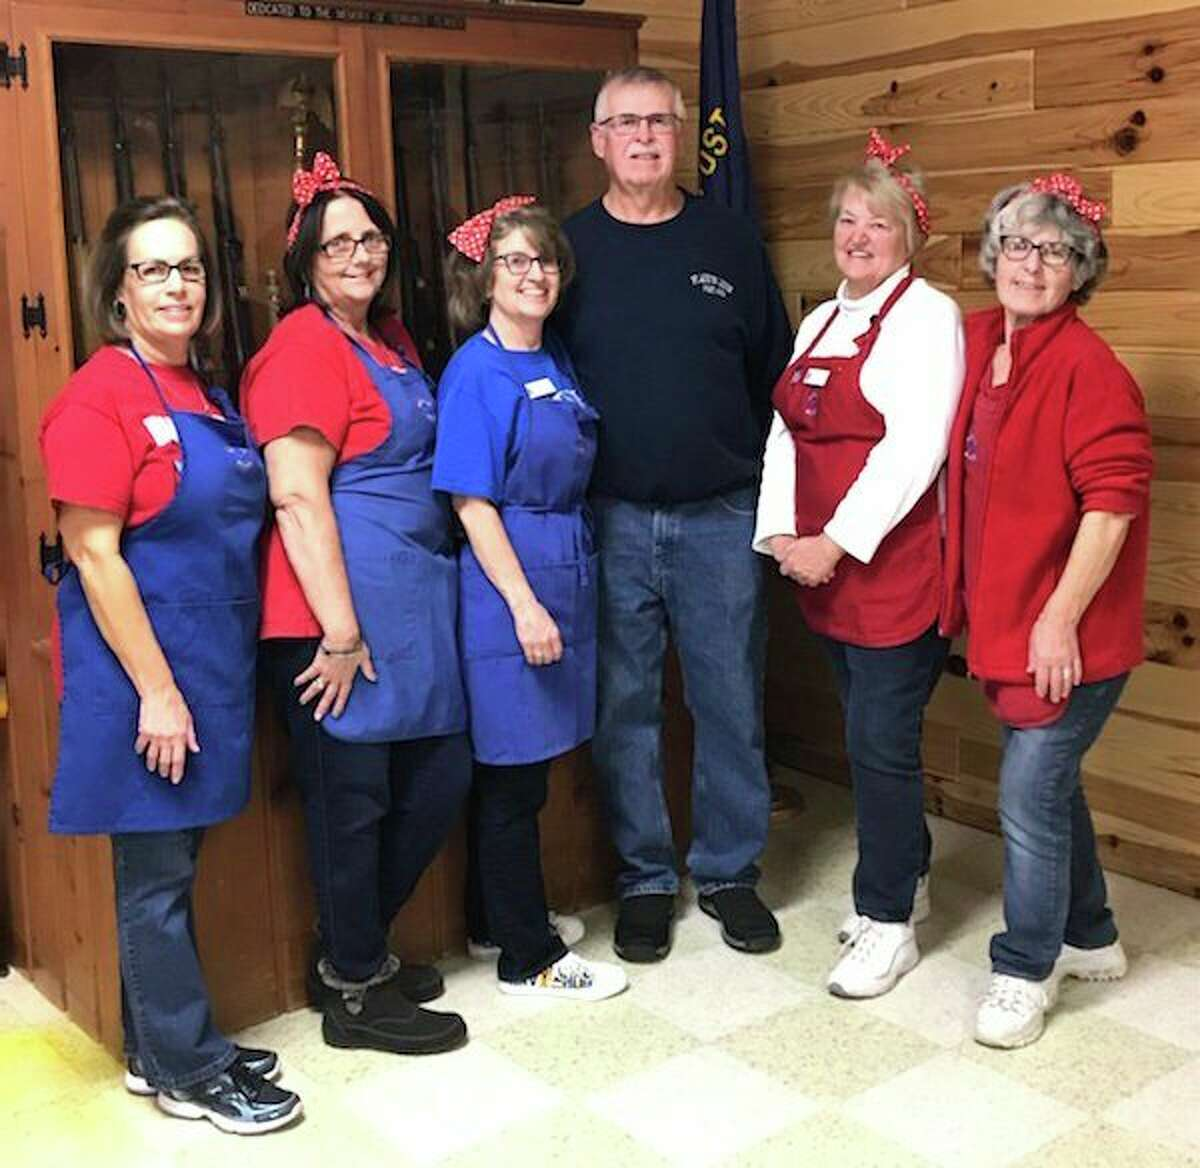 American Legion Commander Don Schramski presented a donation from American Legion Post 499 to the Thumb Chapter MI-178 Blue Star Mothers in November. Pictured are Deb Decker, Sherry Kramer, Chapter President Marcia Janik, Don Schramski Commander of American Legion Post 499, Lynne Tschirhart and Grace Rosenthal. (Submitted Photo)